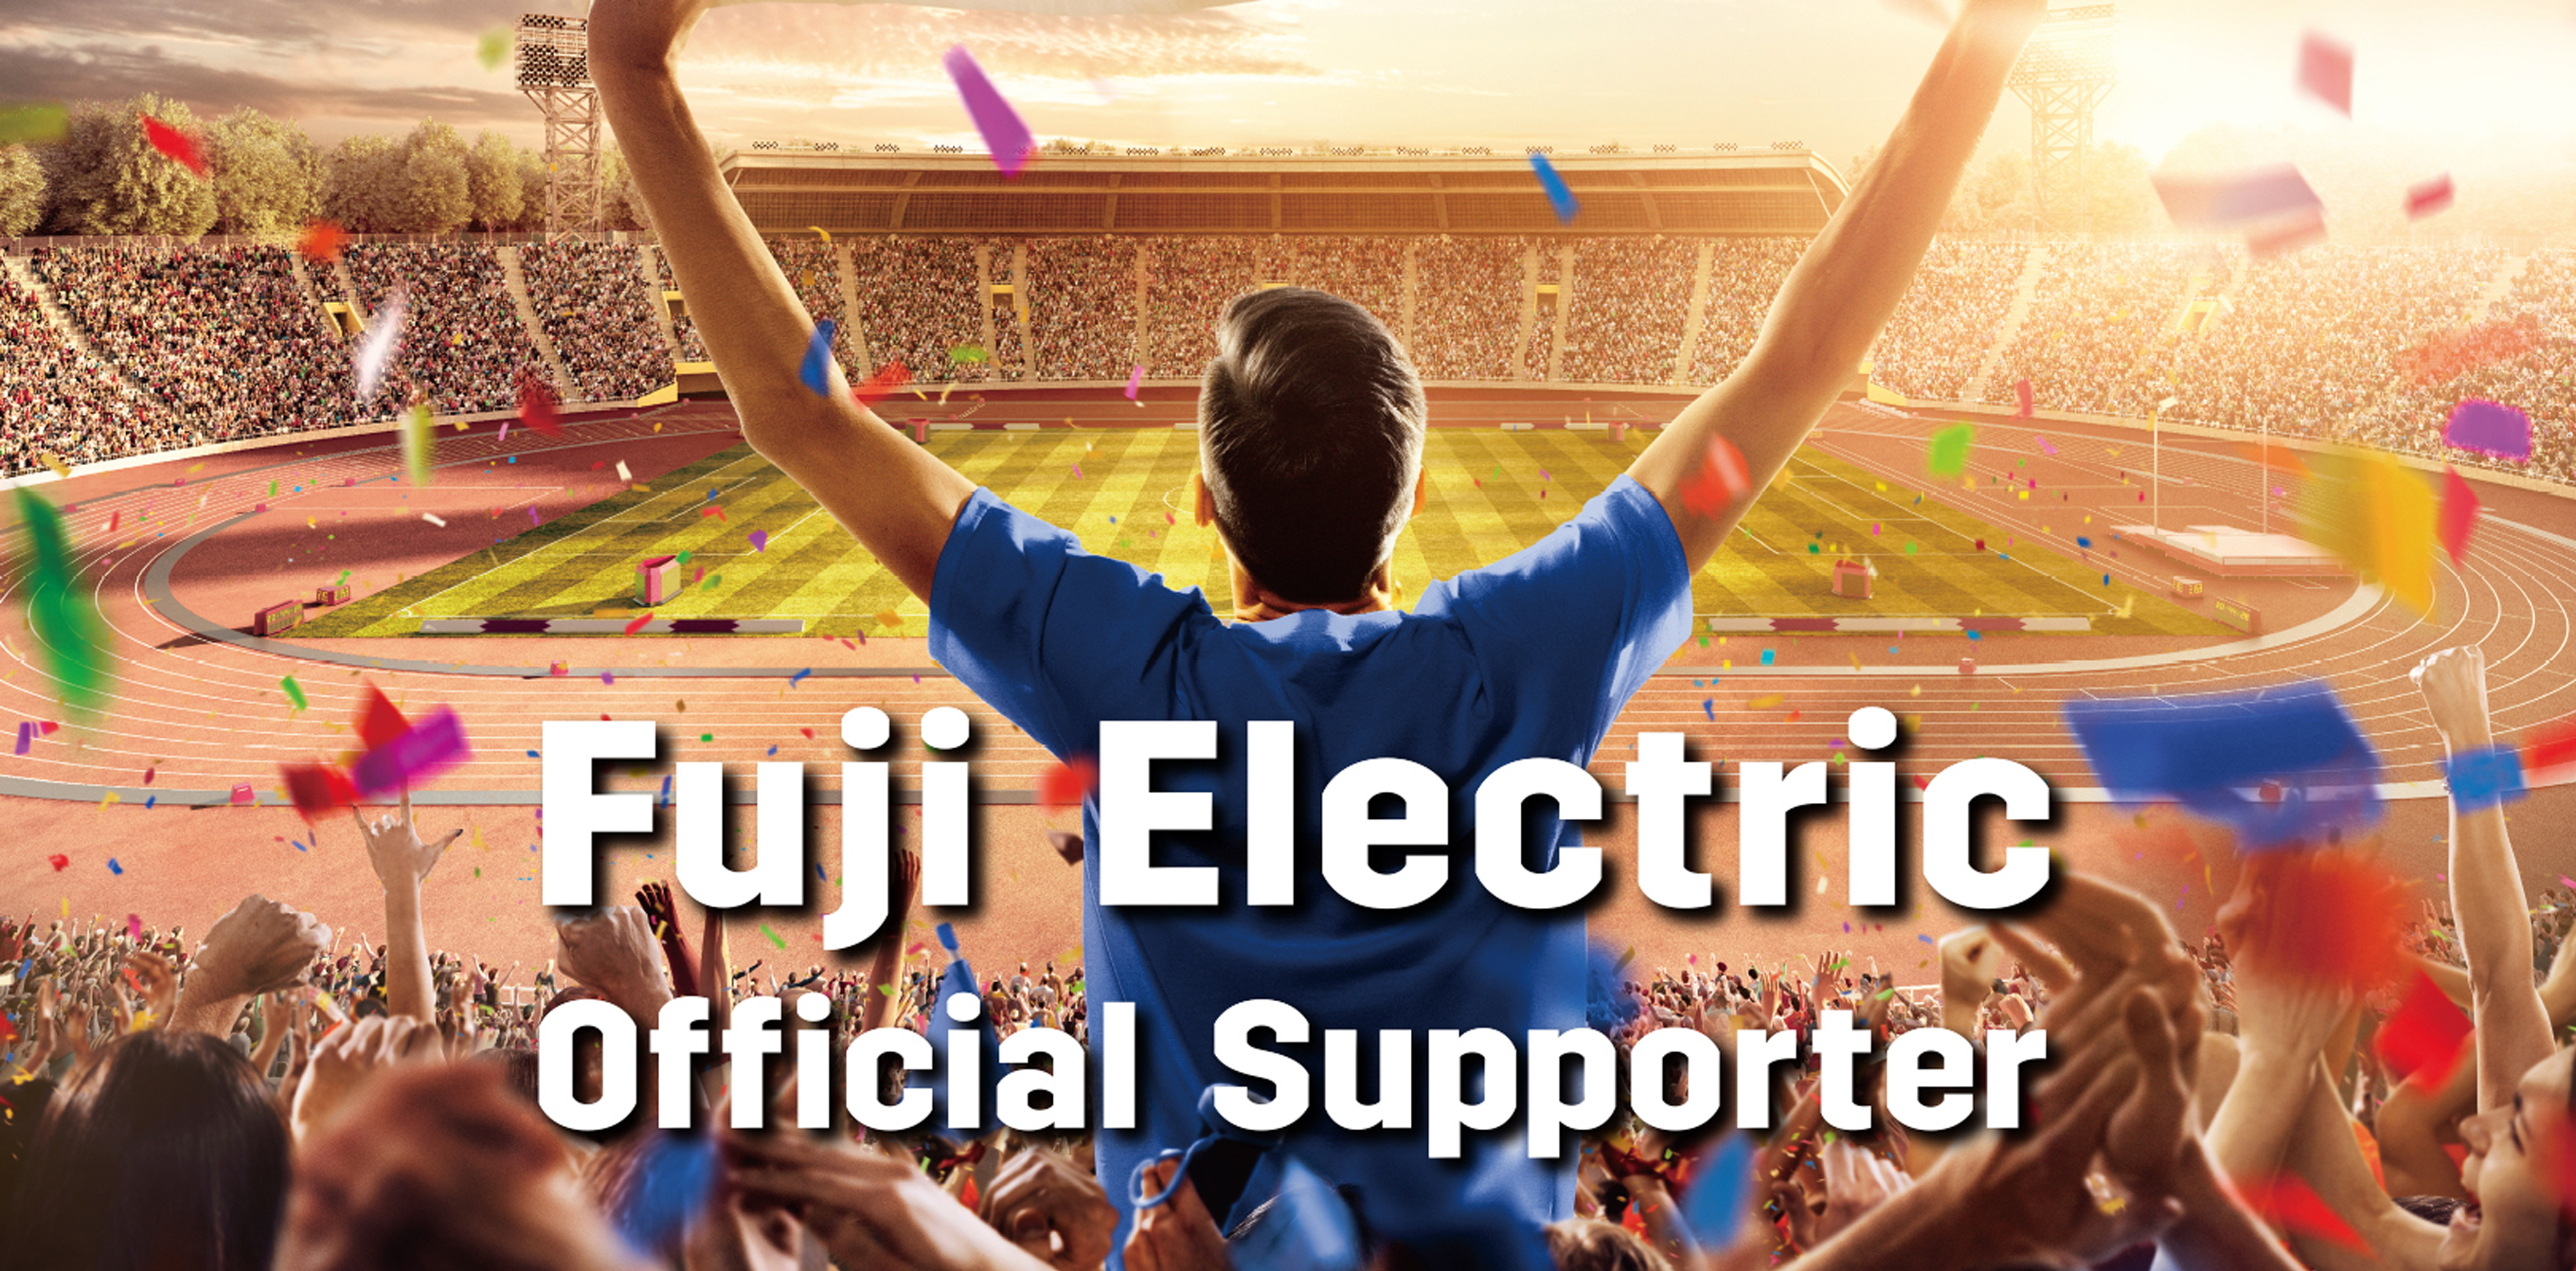 Fuji Electric Official Supporter